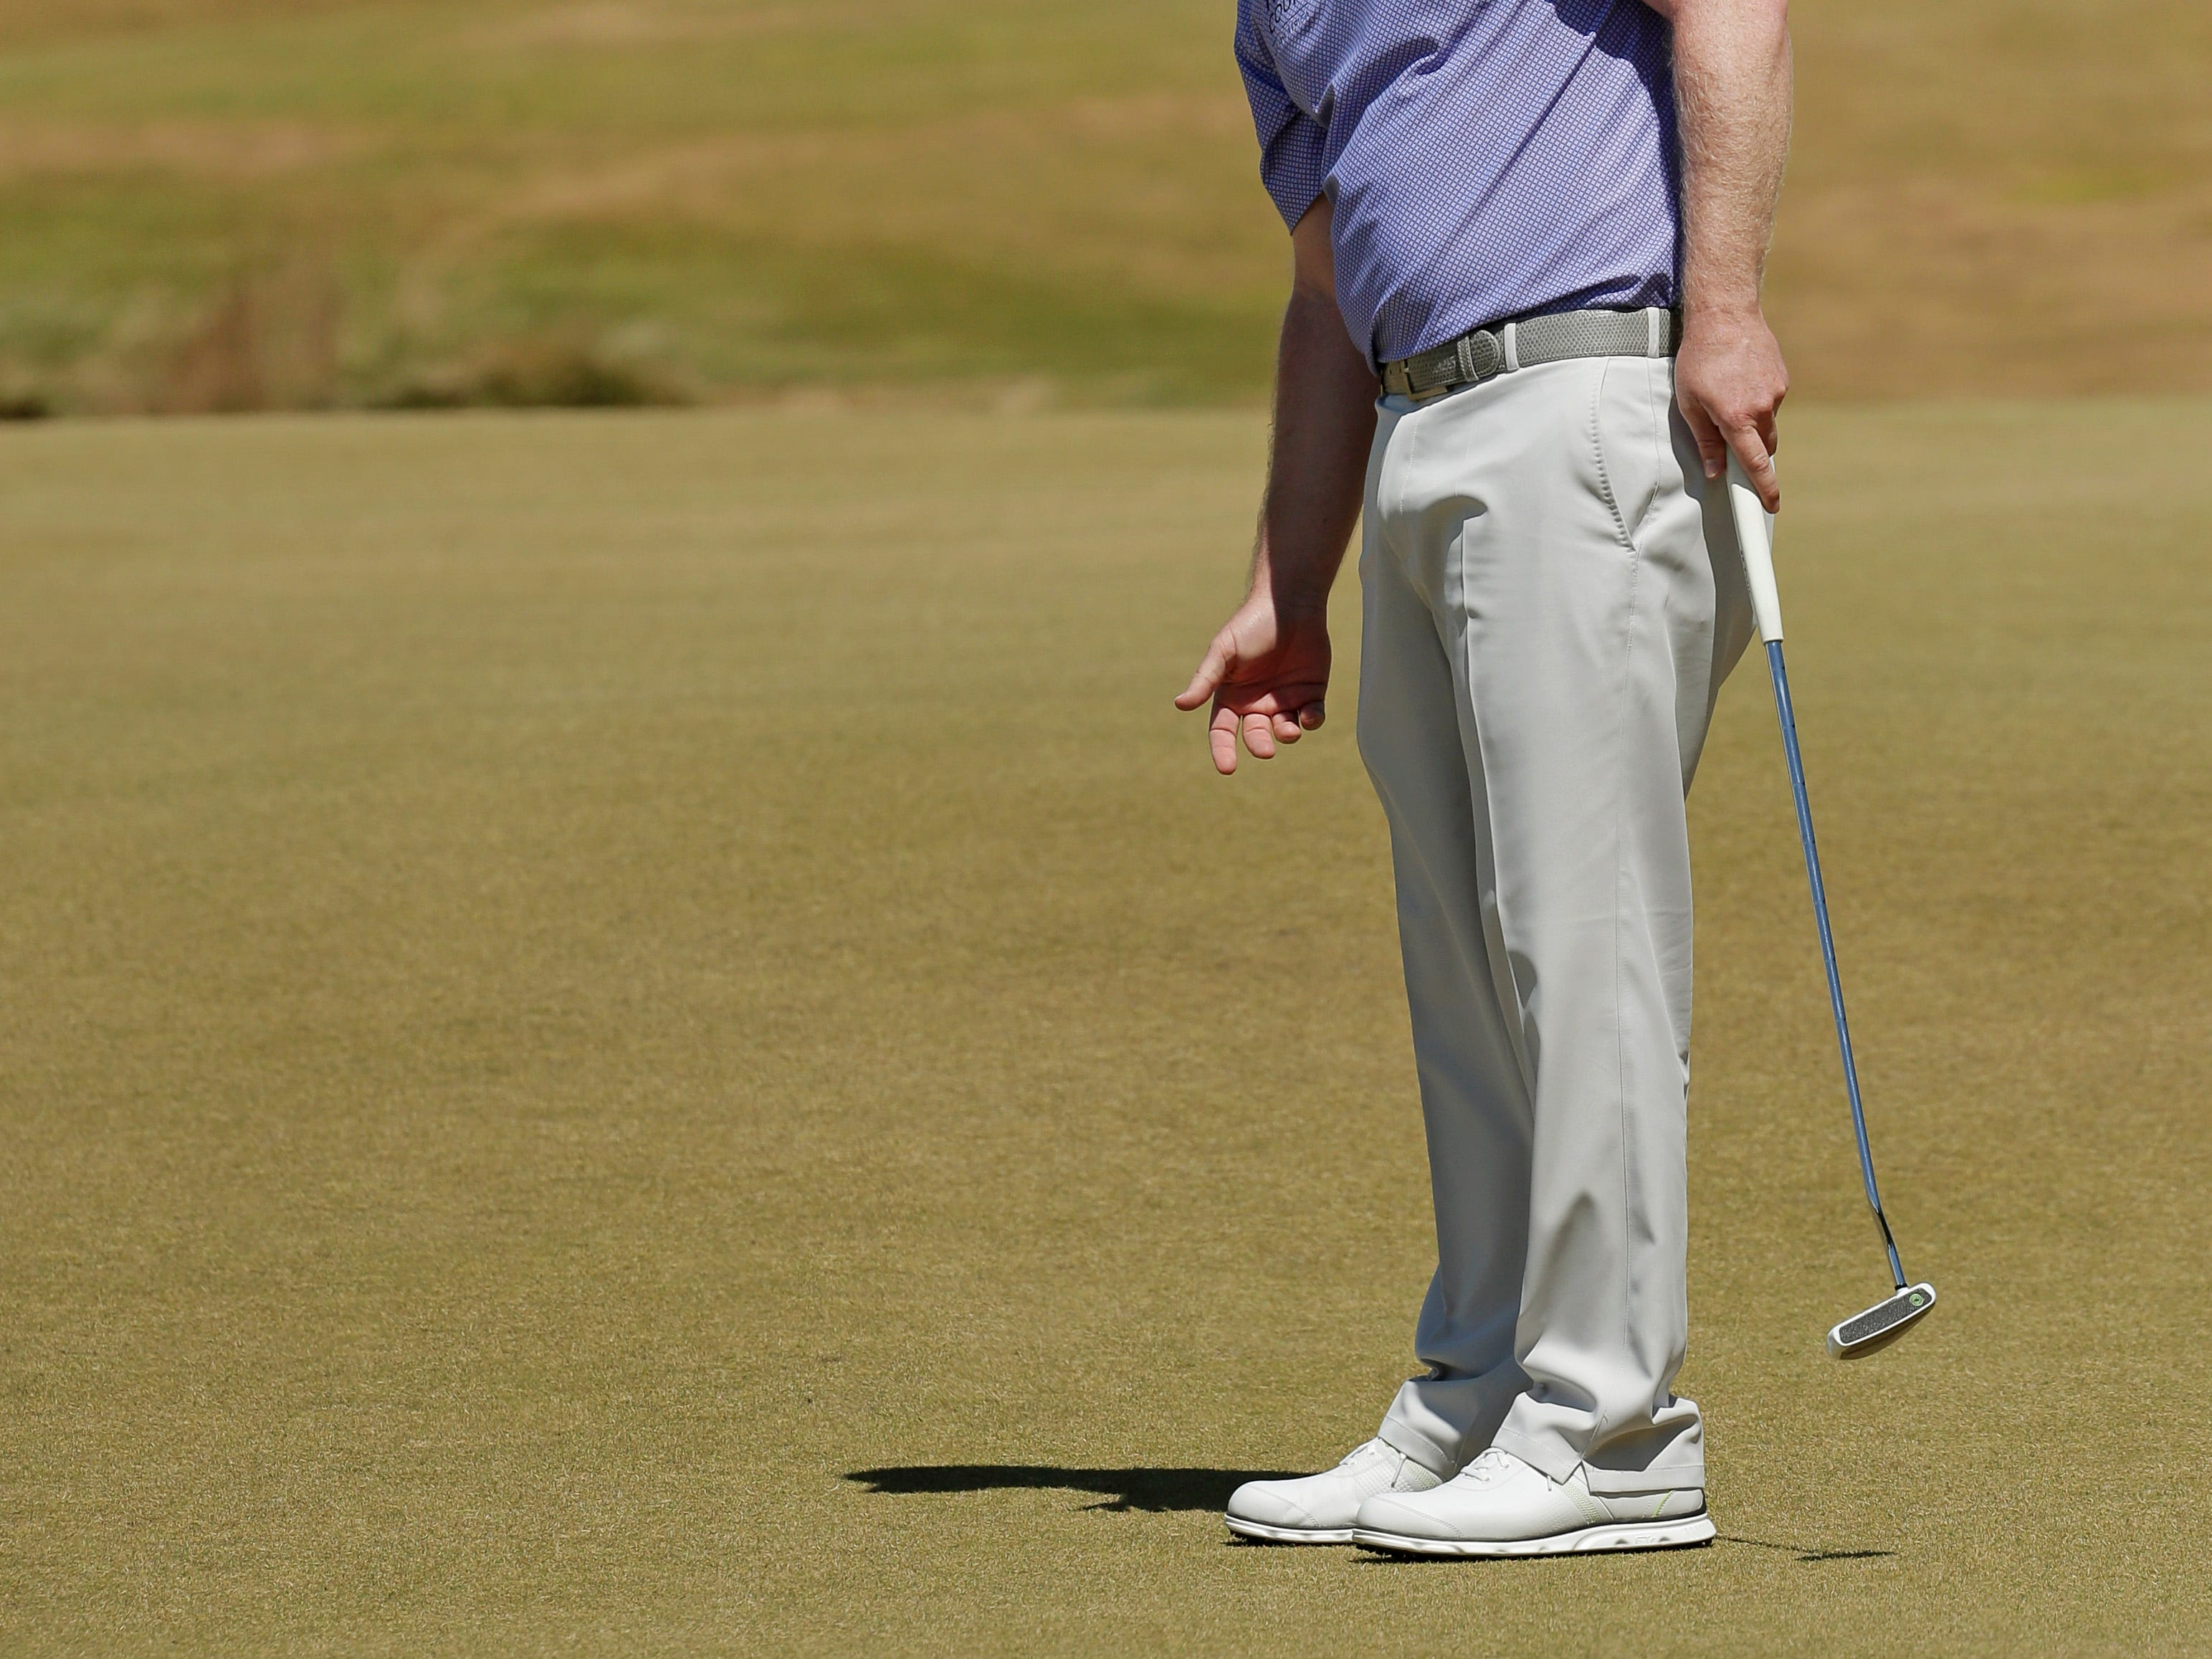 Branden Grace, of South Africa, reacts to his putt on the 13th hole during the second round of the U.S. Open golf tournament at Chambers Bay on Friday, June 19, 2015 in University Place, Wash. (AP Photo/Charlie Riedel)